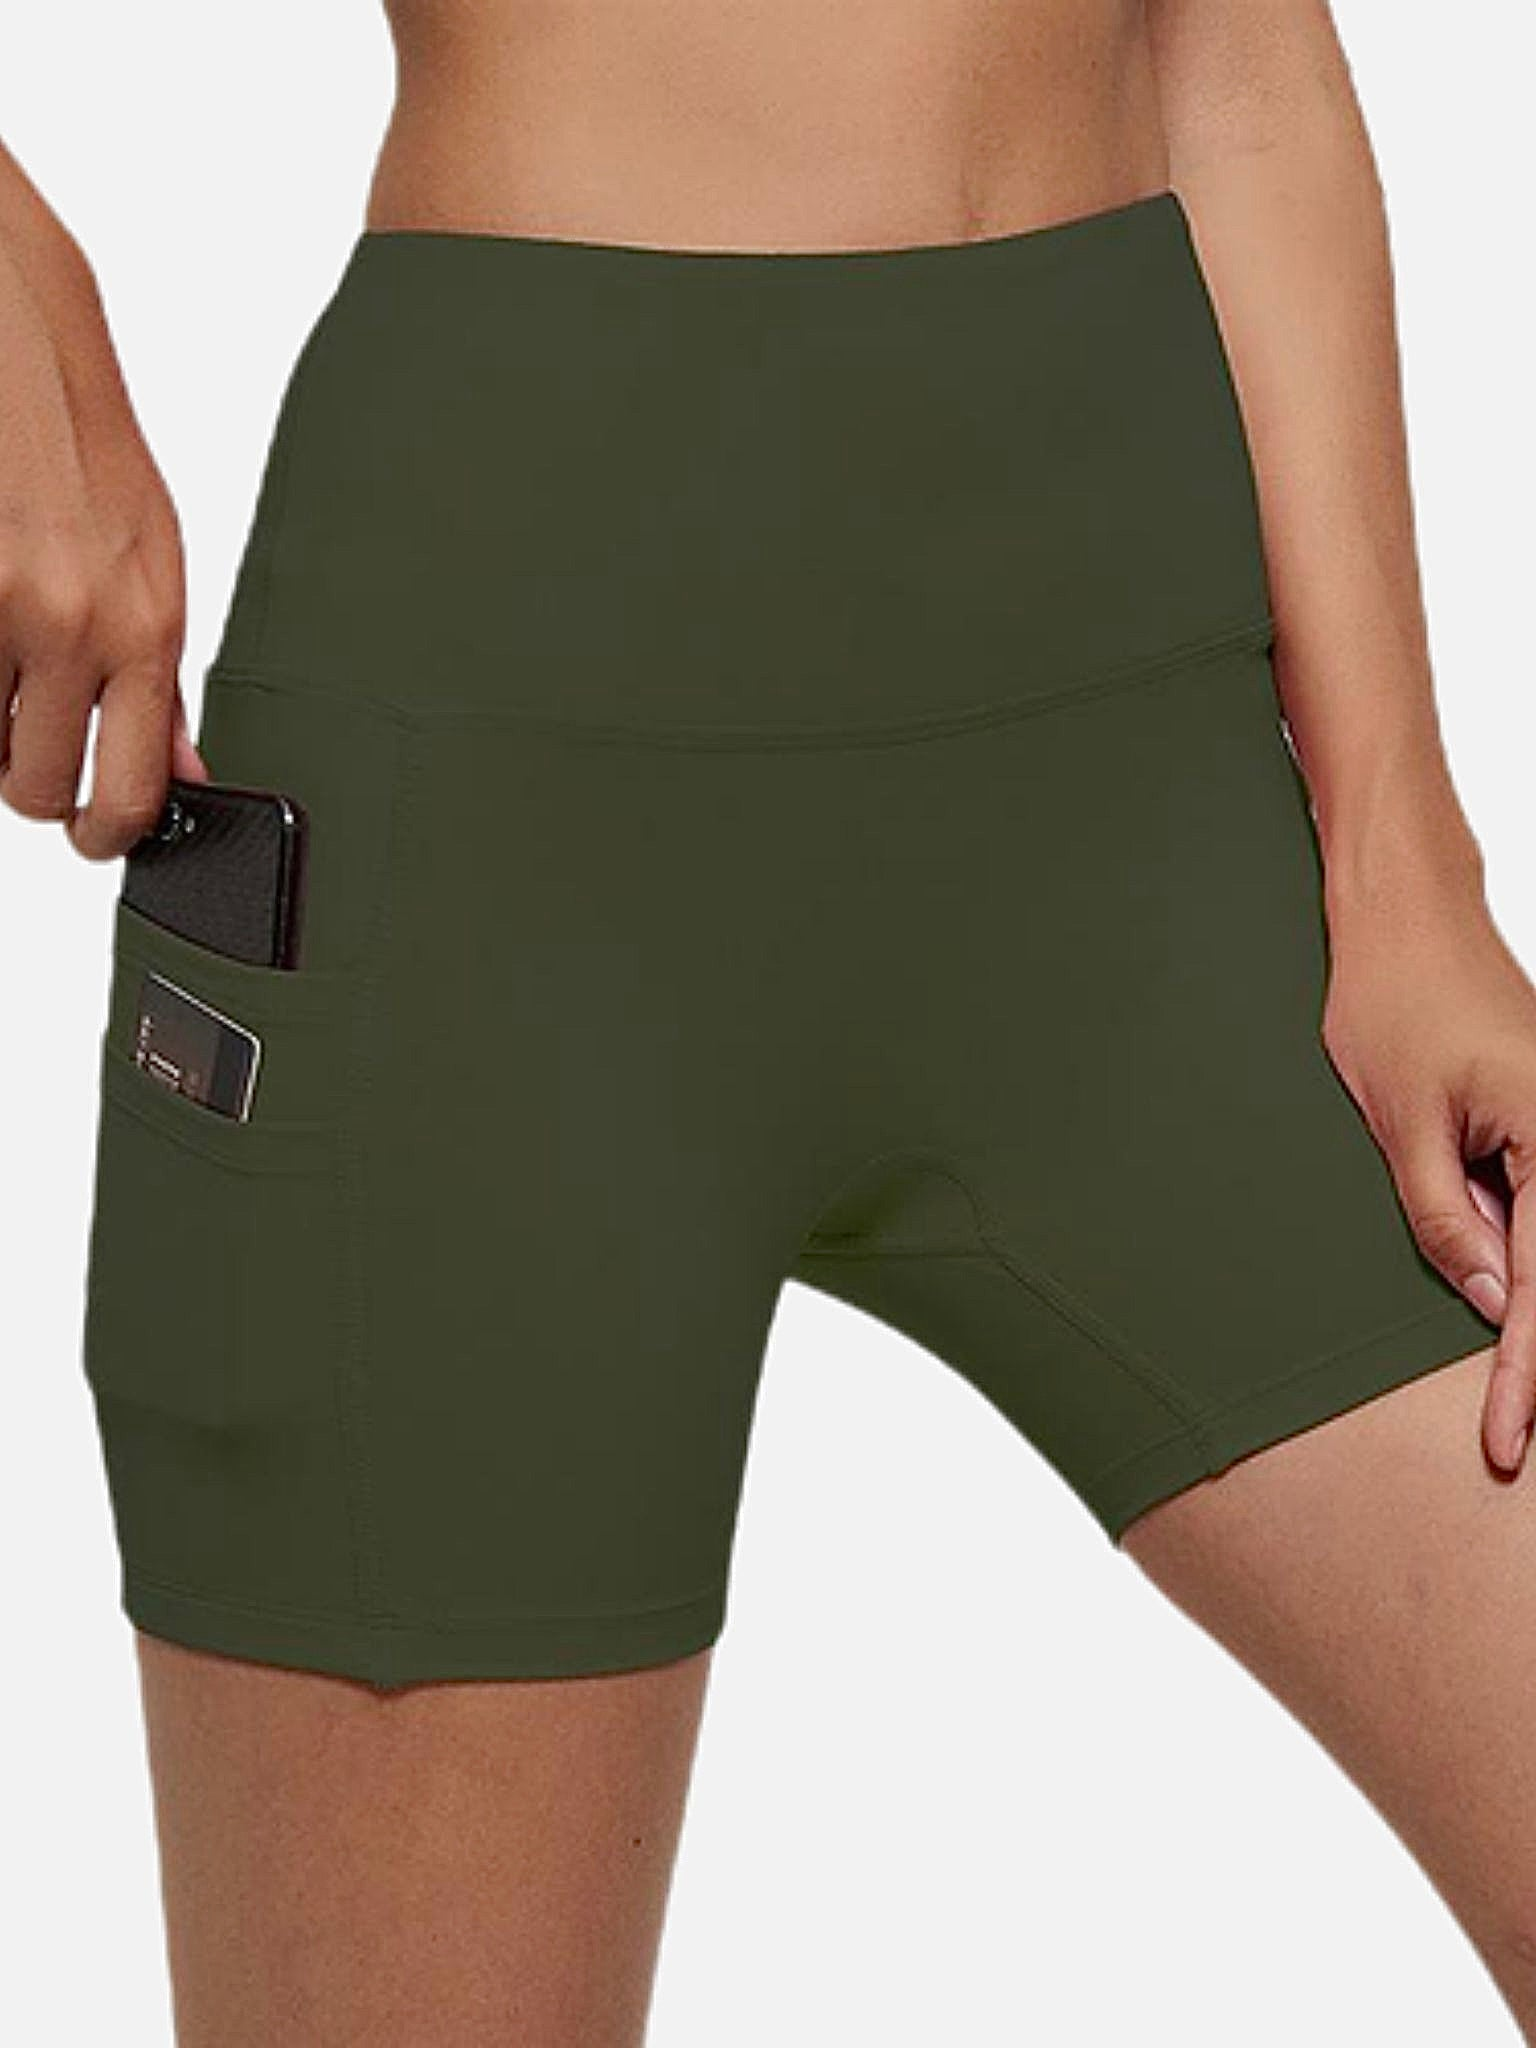 miFit Sports Shorts     Cellphone pocket no camel toe high waist army green buttery-soft plus size Fitness Gym Workout Yoga Athletic Training Sport Women's Shorts Sportswear Trend